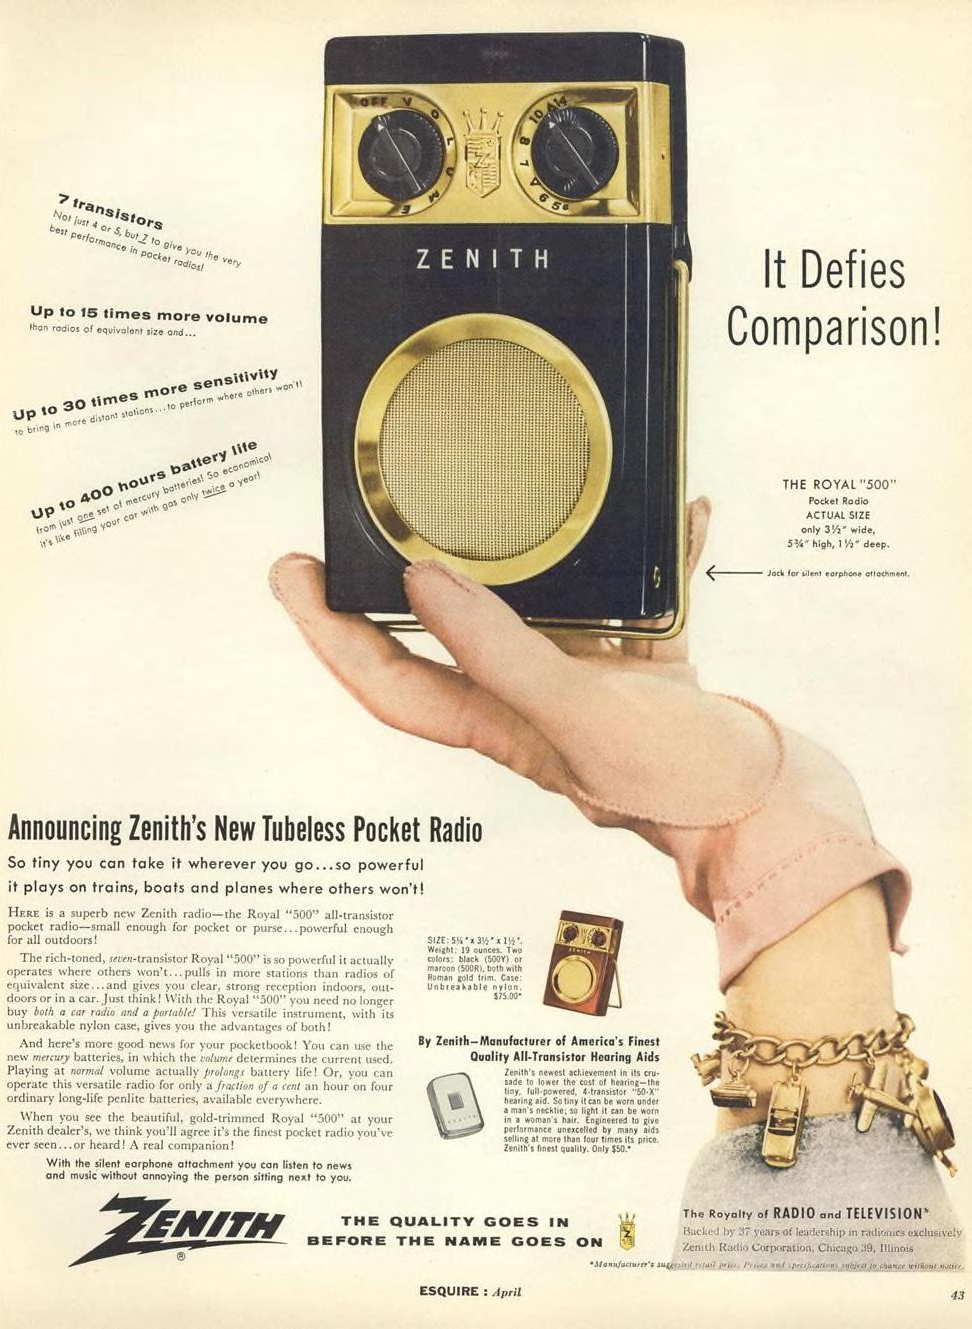 Zenith Royal '500' - published in Esquire - April 1956